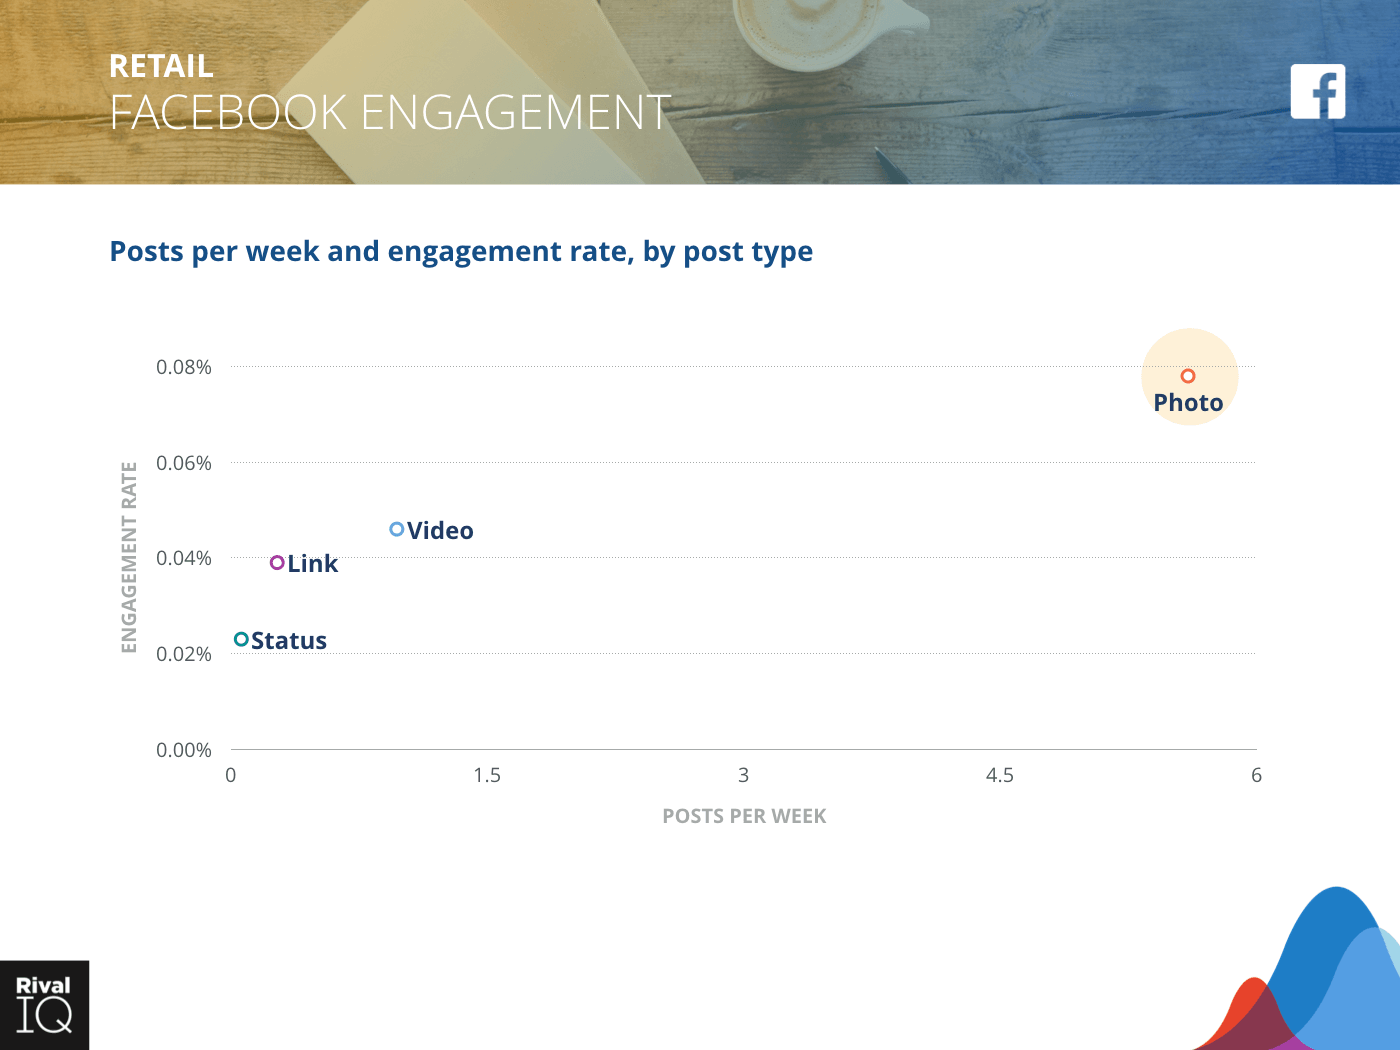 Retail Industry: scatter graph, average post per week by type and engagement rate on Facebook